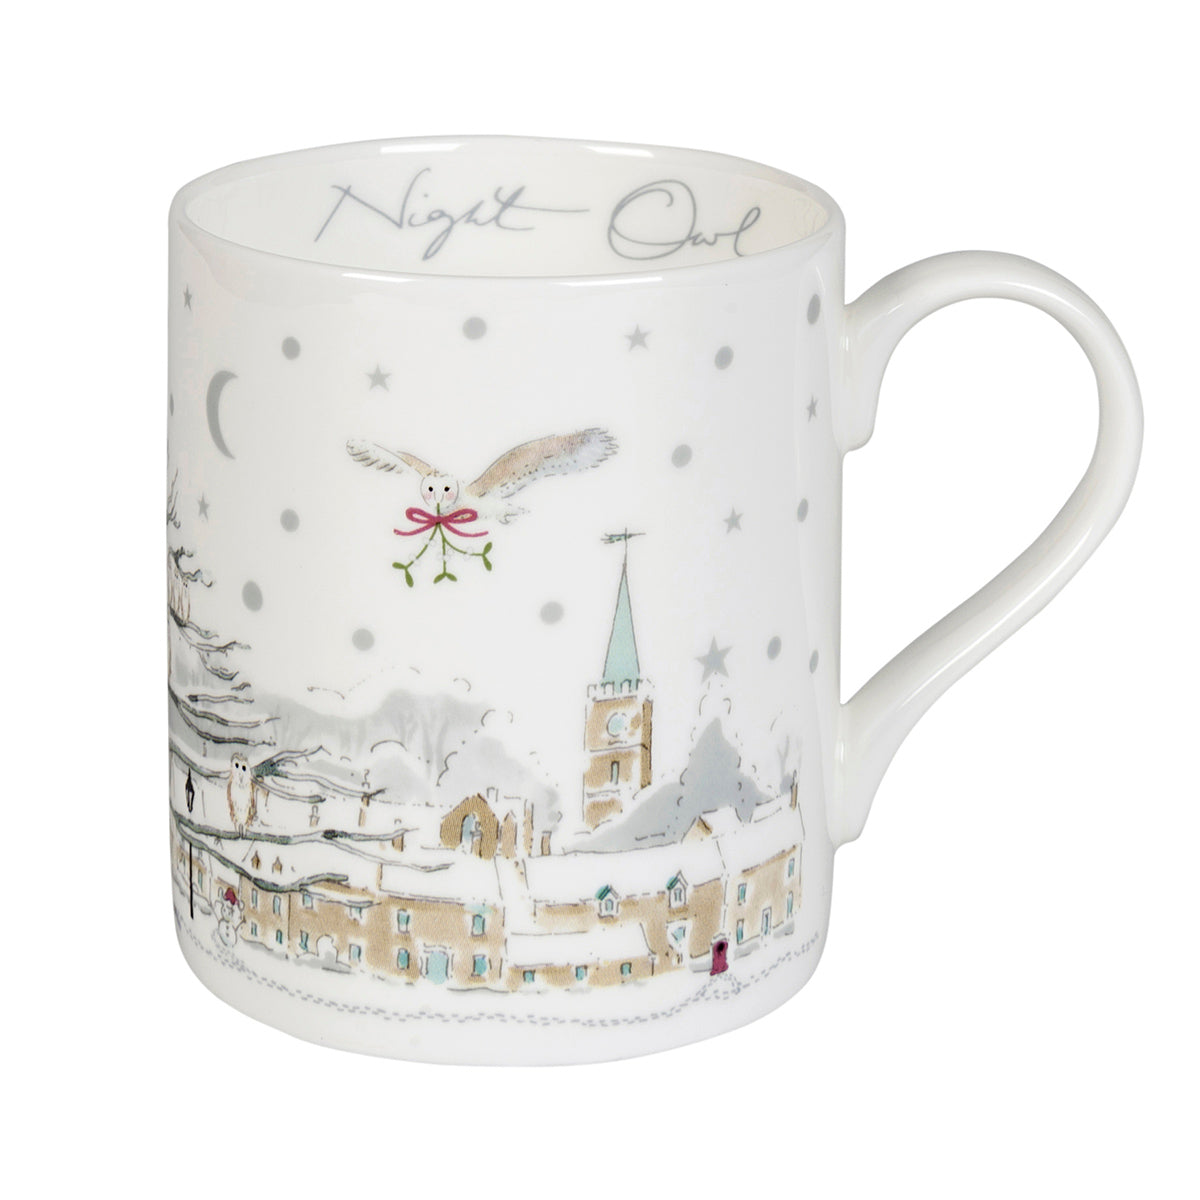 Night Owl Village Scene Mug